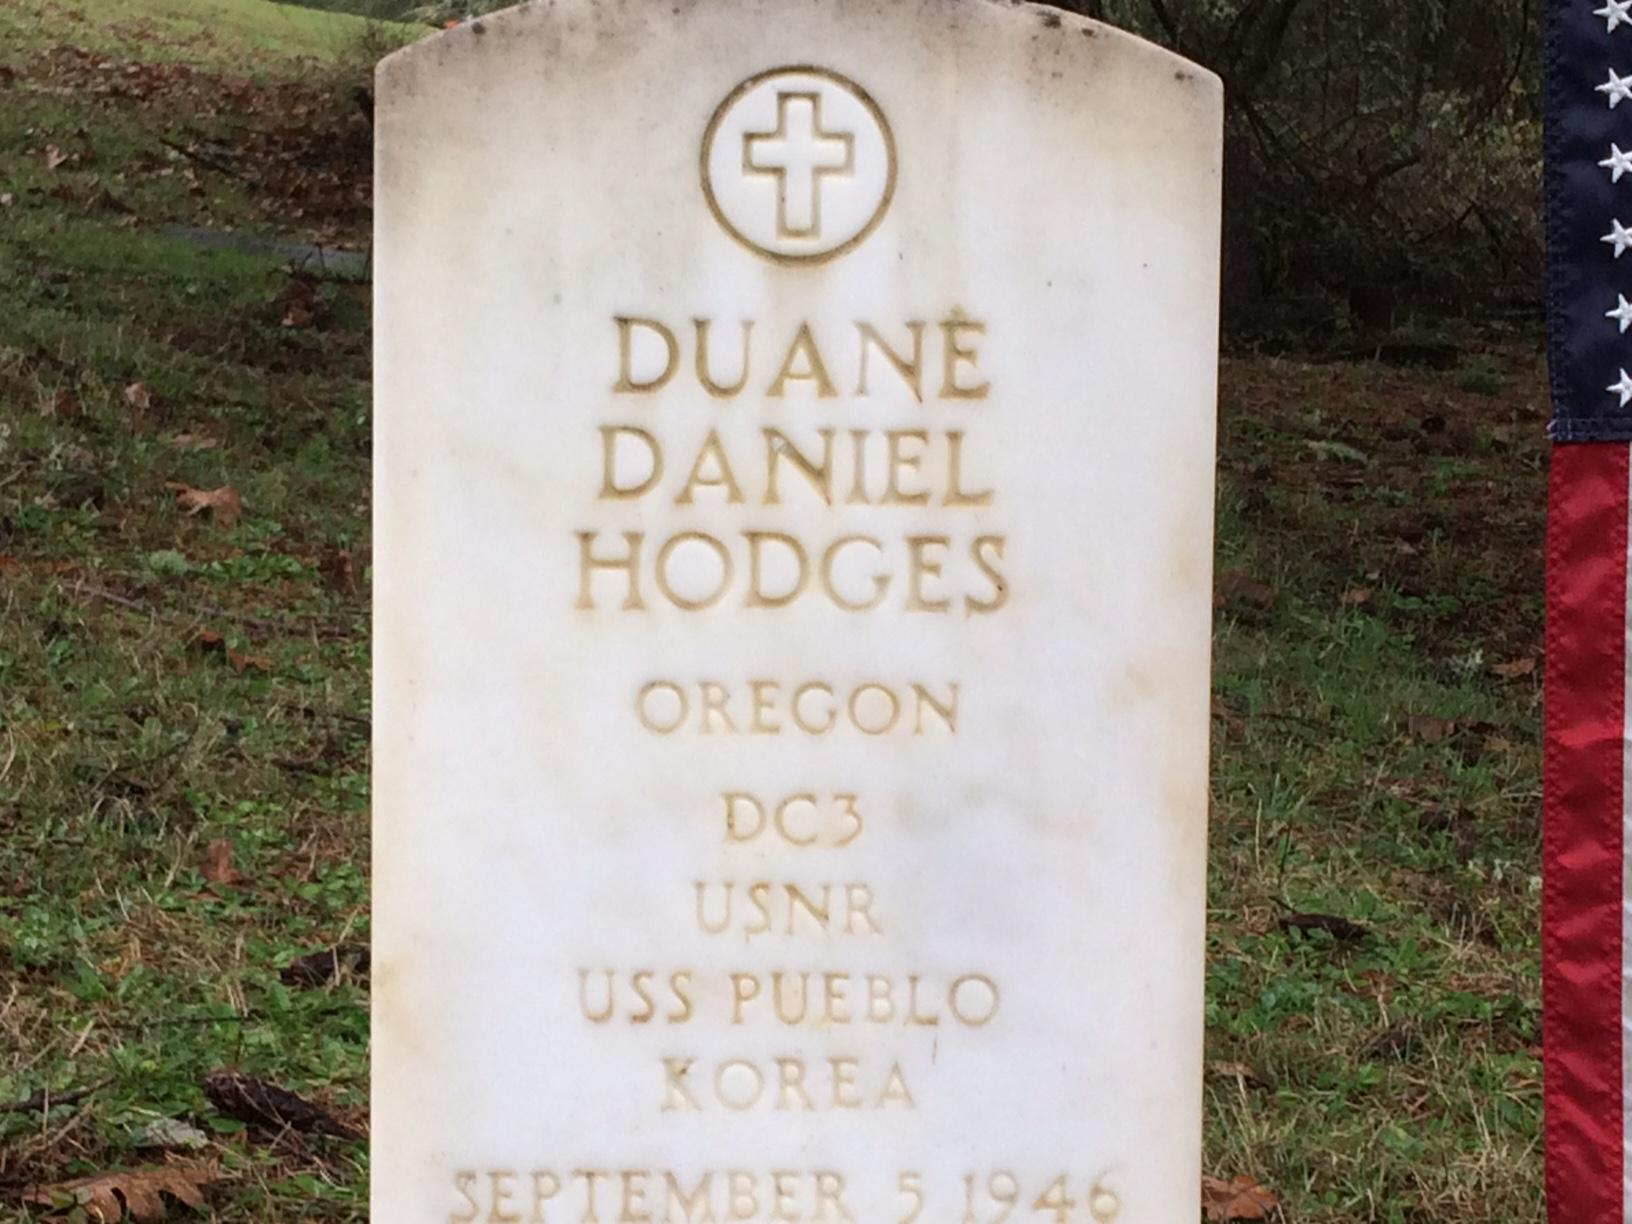 Petty Officer Duane Hodges, 21, of Creswell, Oregon, died Jan. 23, 1968, when North Korea attacked the USS Pueblo. The rest of the crew endured 11 months of captivity before being released. People gathers in Creswell on Tuesday to remember Hodges. (SBG)